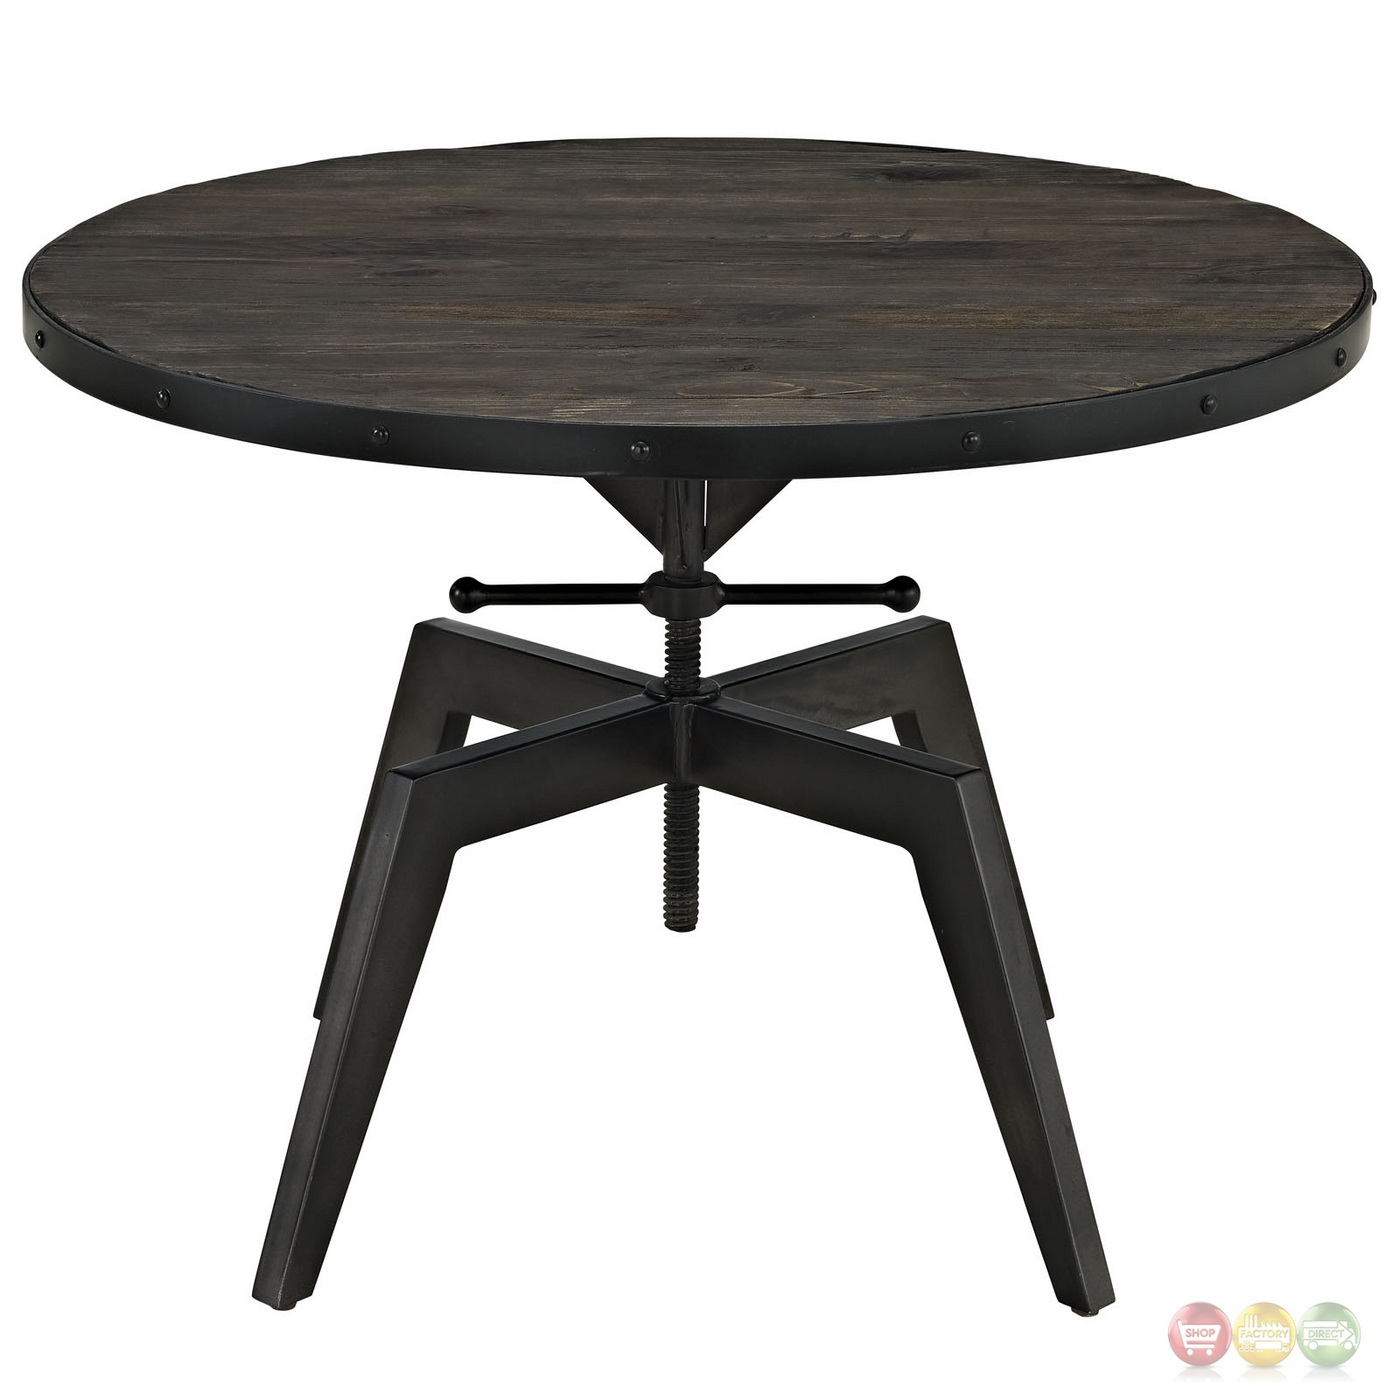 Grasp Industrial Round Pine Wood Coffee Table With Metal Trim Base Black